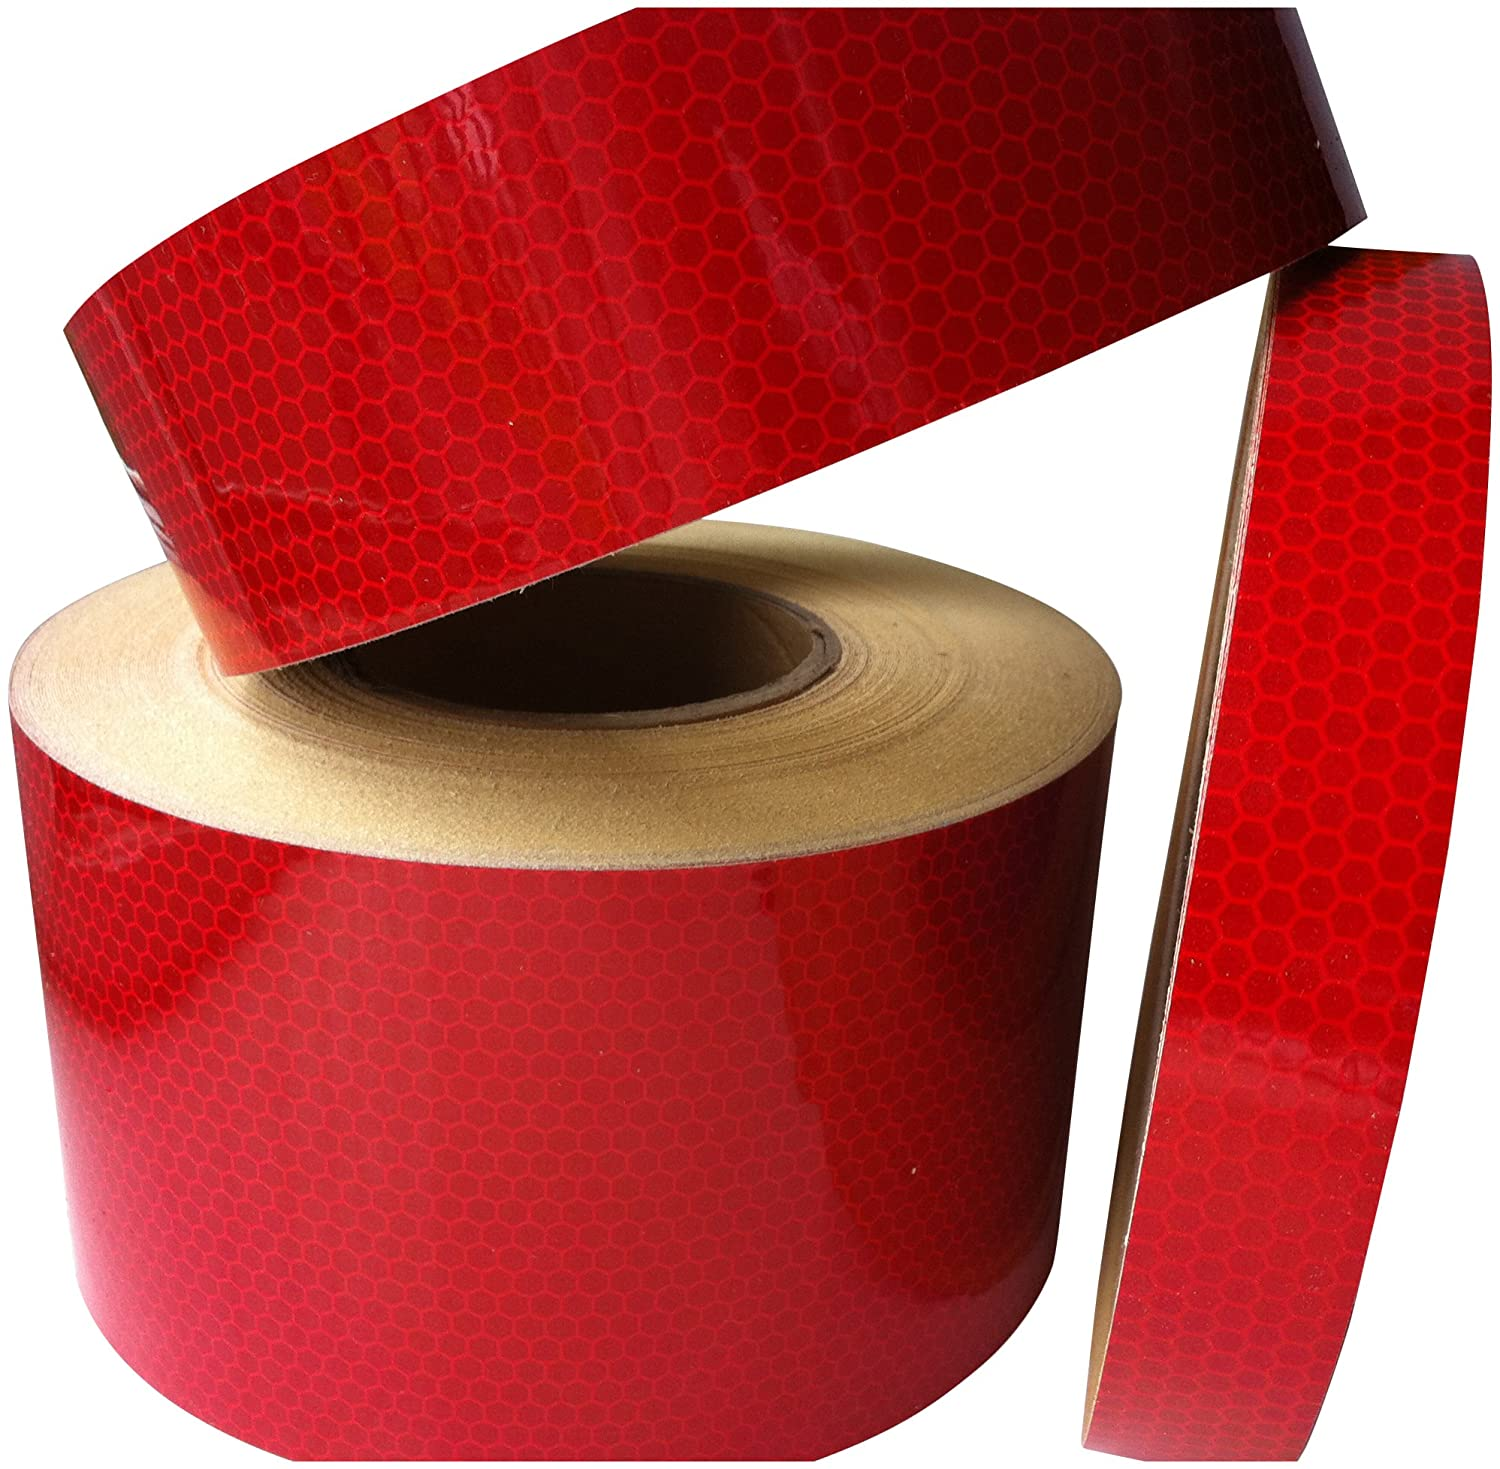 New High Intensity Reflective Tape Vinyl 50mm X 3M Roll - Red Direct Products